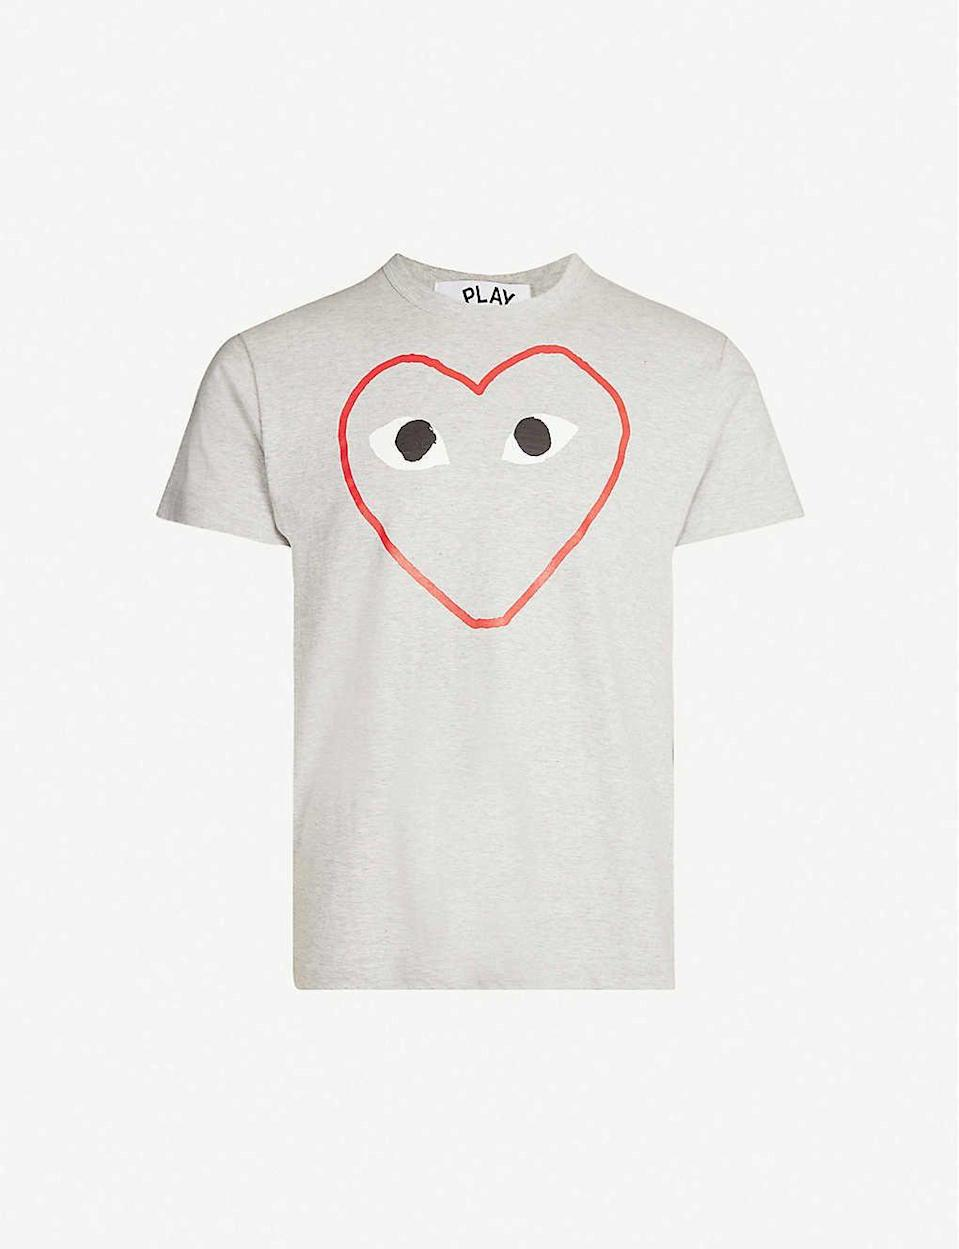 """<p><strong>Comme Des Garcons Play</strong></p><p>selfridges.com.us</p><p><strong>$121.00</strong></p><p><a href=""""https://go.redirectingat.com?id=74968X1596630&url=https%3A%2F%2Fwww.selfridges.com%2FUS%2Fen%2Fcat%2Fcomme-des-garcons-play-cdg-empty-heart-tee_1124-2000022-P1T266&sref=https%3A%2F%2Fwww.seventeen.com%2Flife%2Ffriends-family%2Fg1088%2Fholiday-gifts-for-dad%2F"""" rel=""""nofollow noopener"""" target=""""_blank"""" data-ylk=""""slk:Shop Now"""" class=""""link rapid-noclick-resp"""">Shop Now</a></p><p>10/10 would steal from Dad's closet. </p>"""